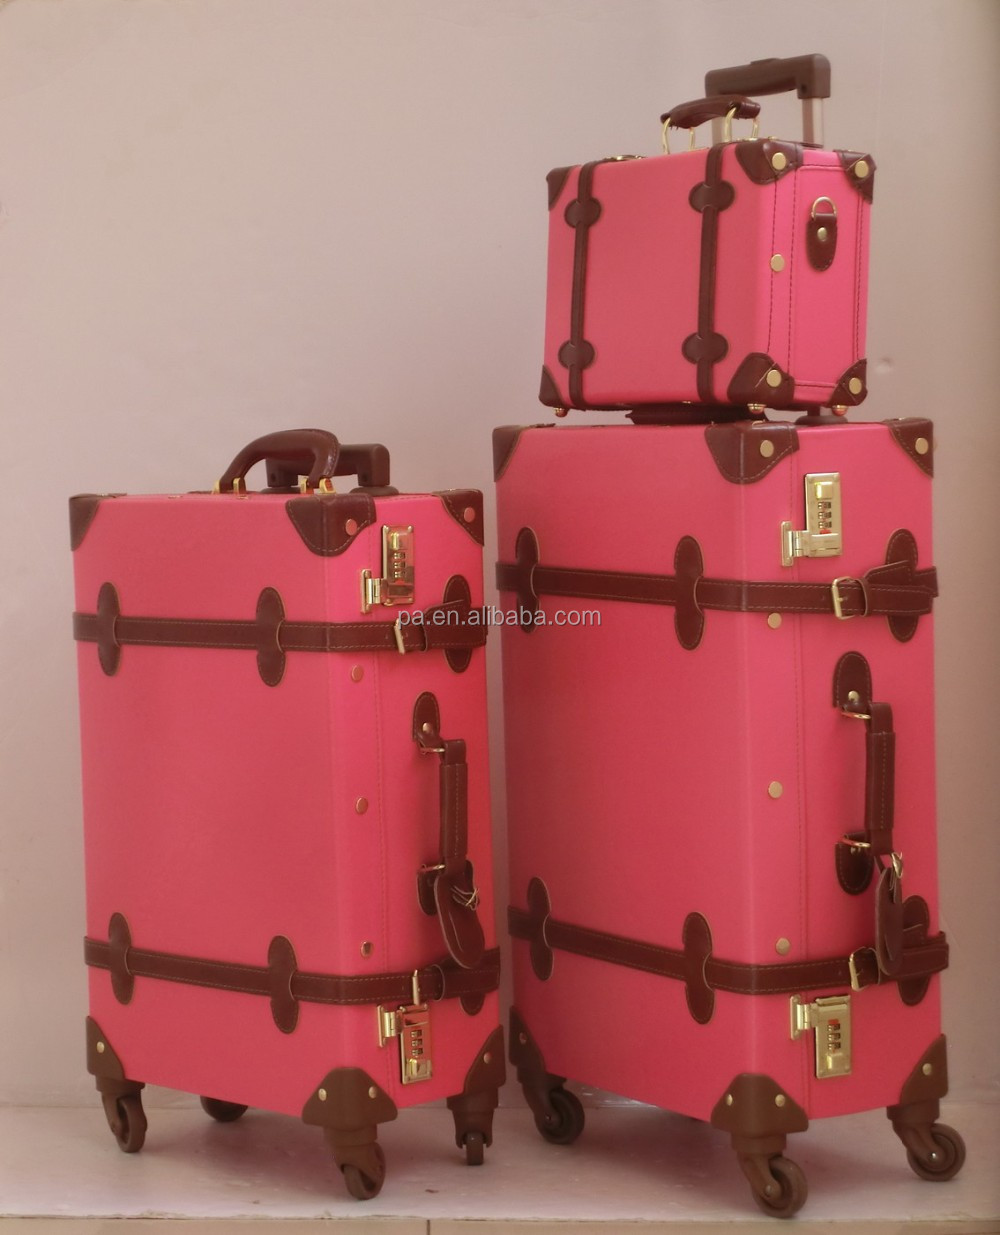 pink vintage suitcase old looking with spiner wheels buy vintage suitcase pink leather. Black Bedroom Furniture Sets. Home Design Ideas